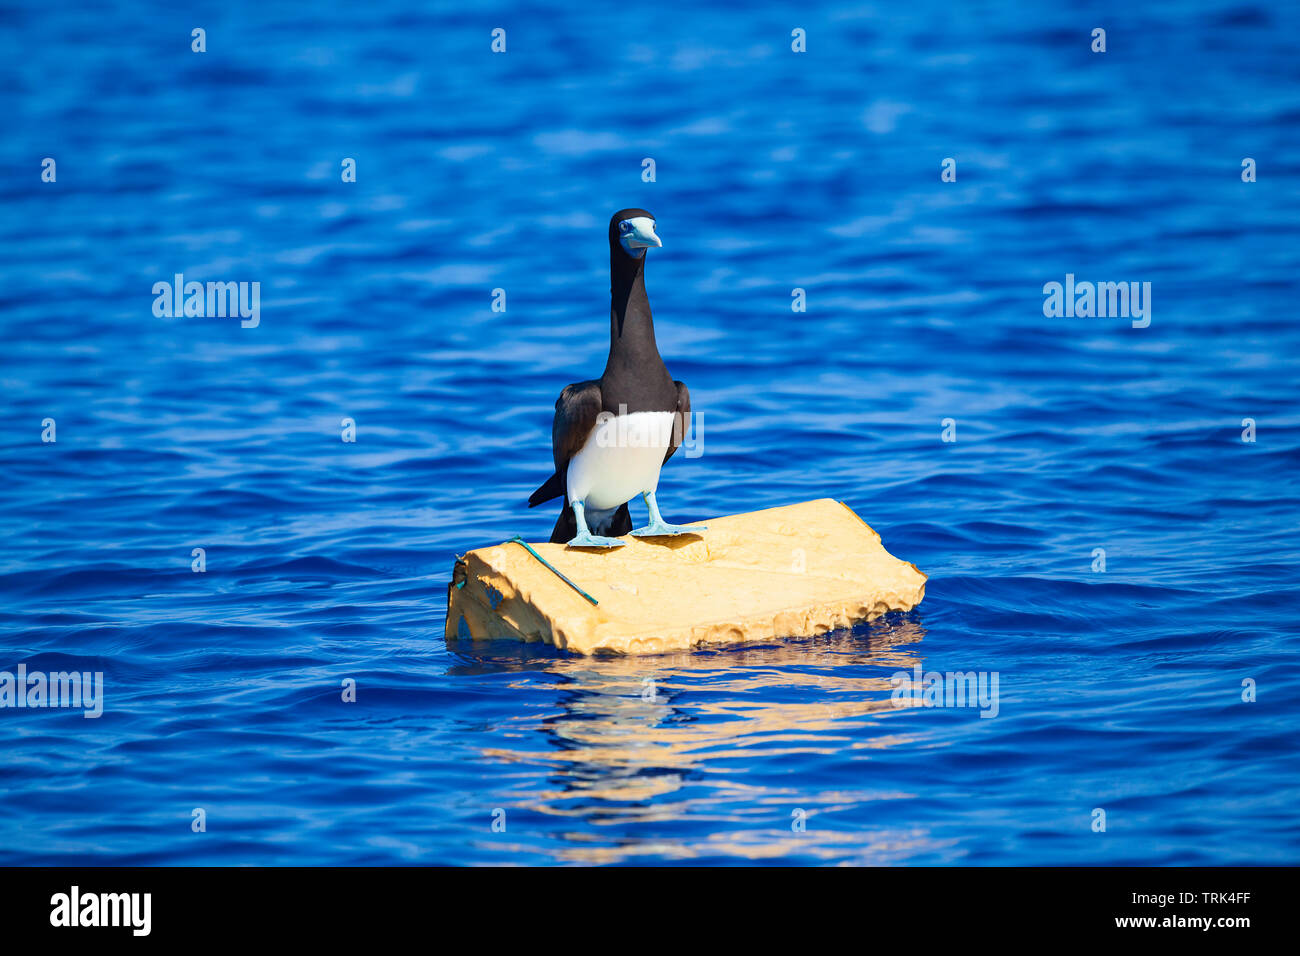 A blue footed booby, Sula nebouxii excisa, standing on a piece of discarded floating plastic off Hawaii. - Stock Image